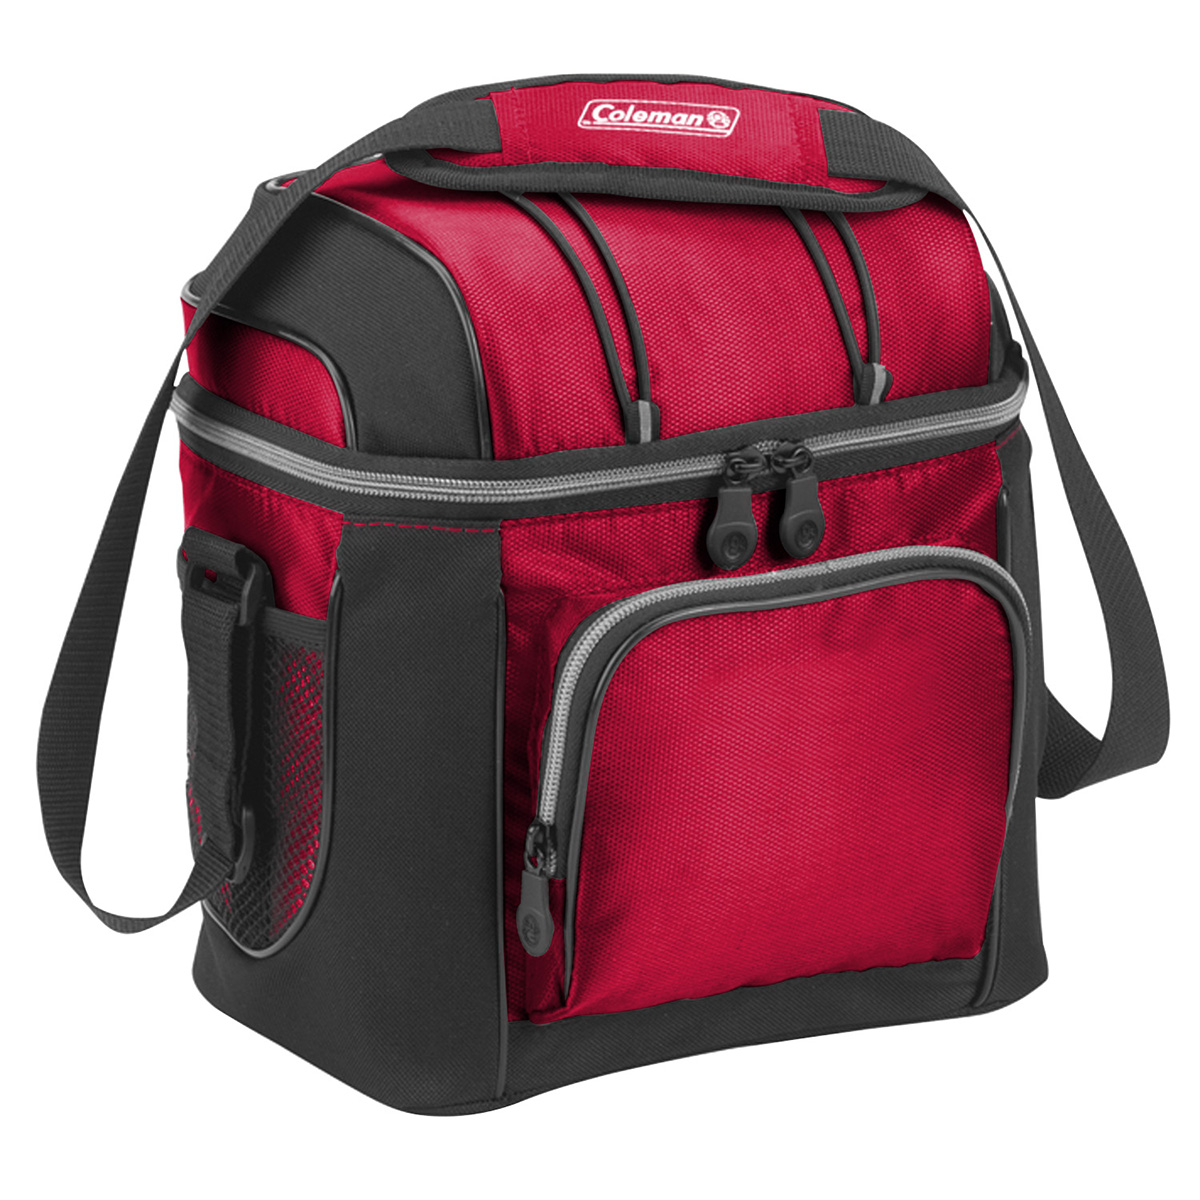 """Red Coleman® 9-Can Soft-Sided Cooler (9.25""""W x 6""""D x 10.25""""H)"""